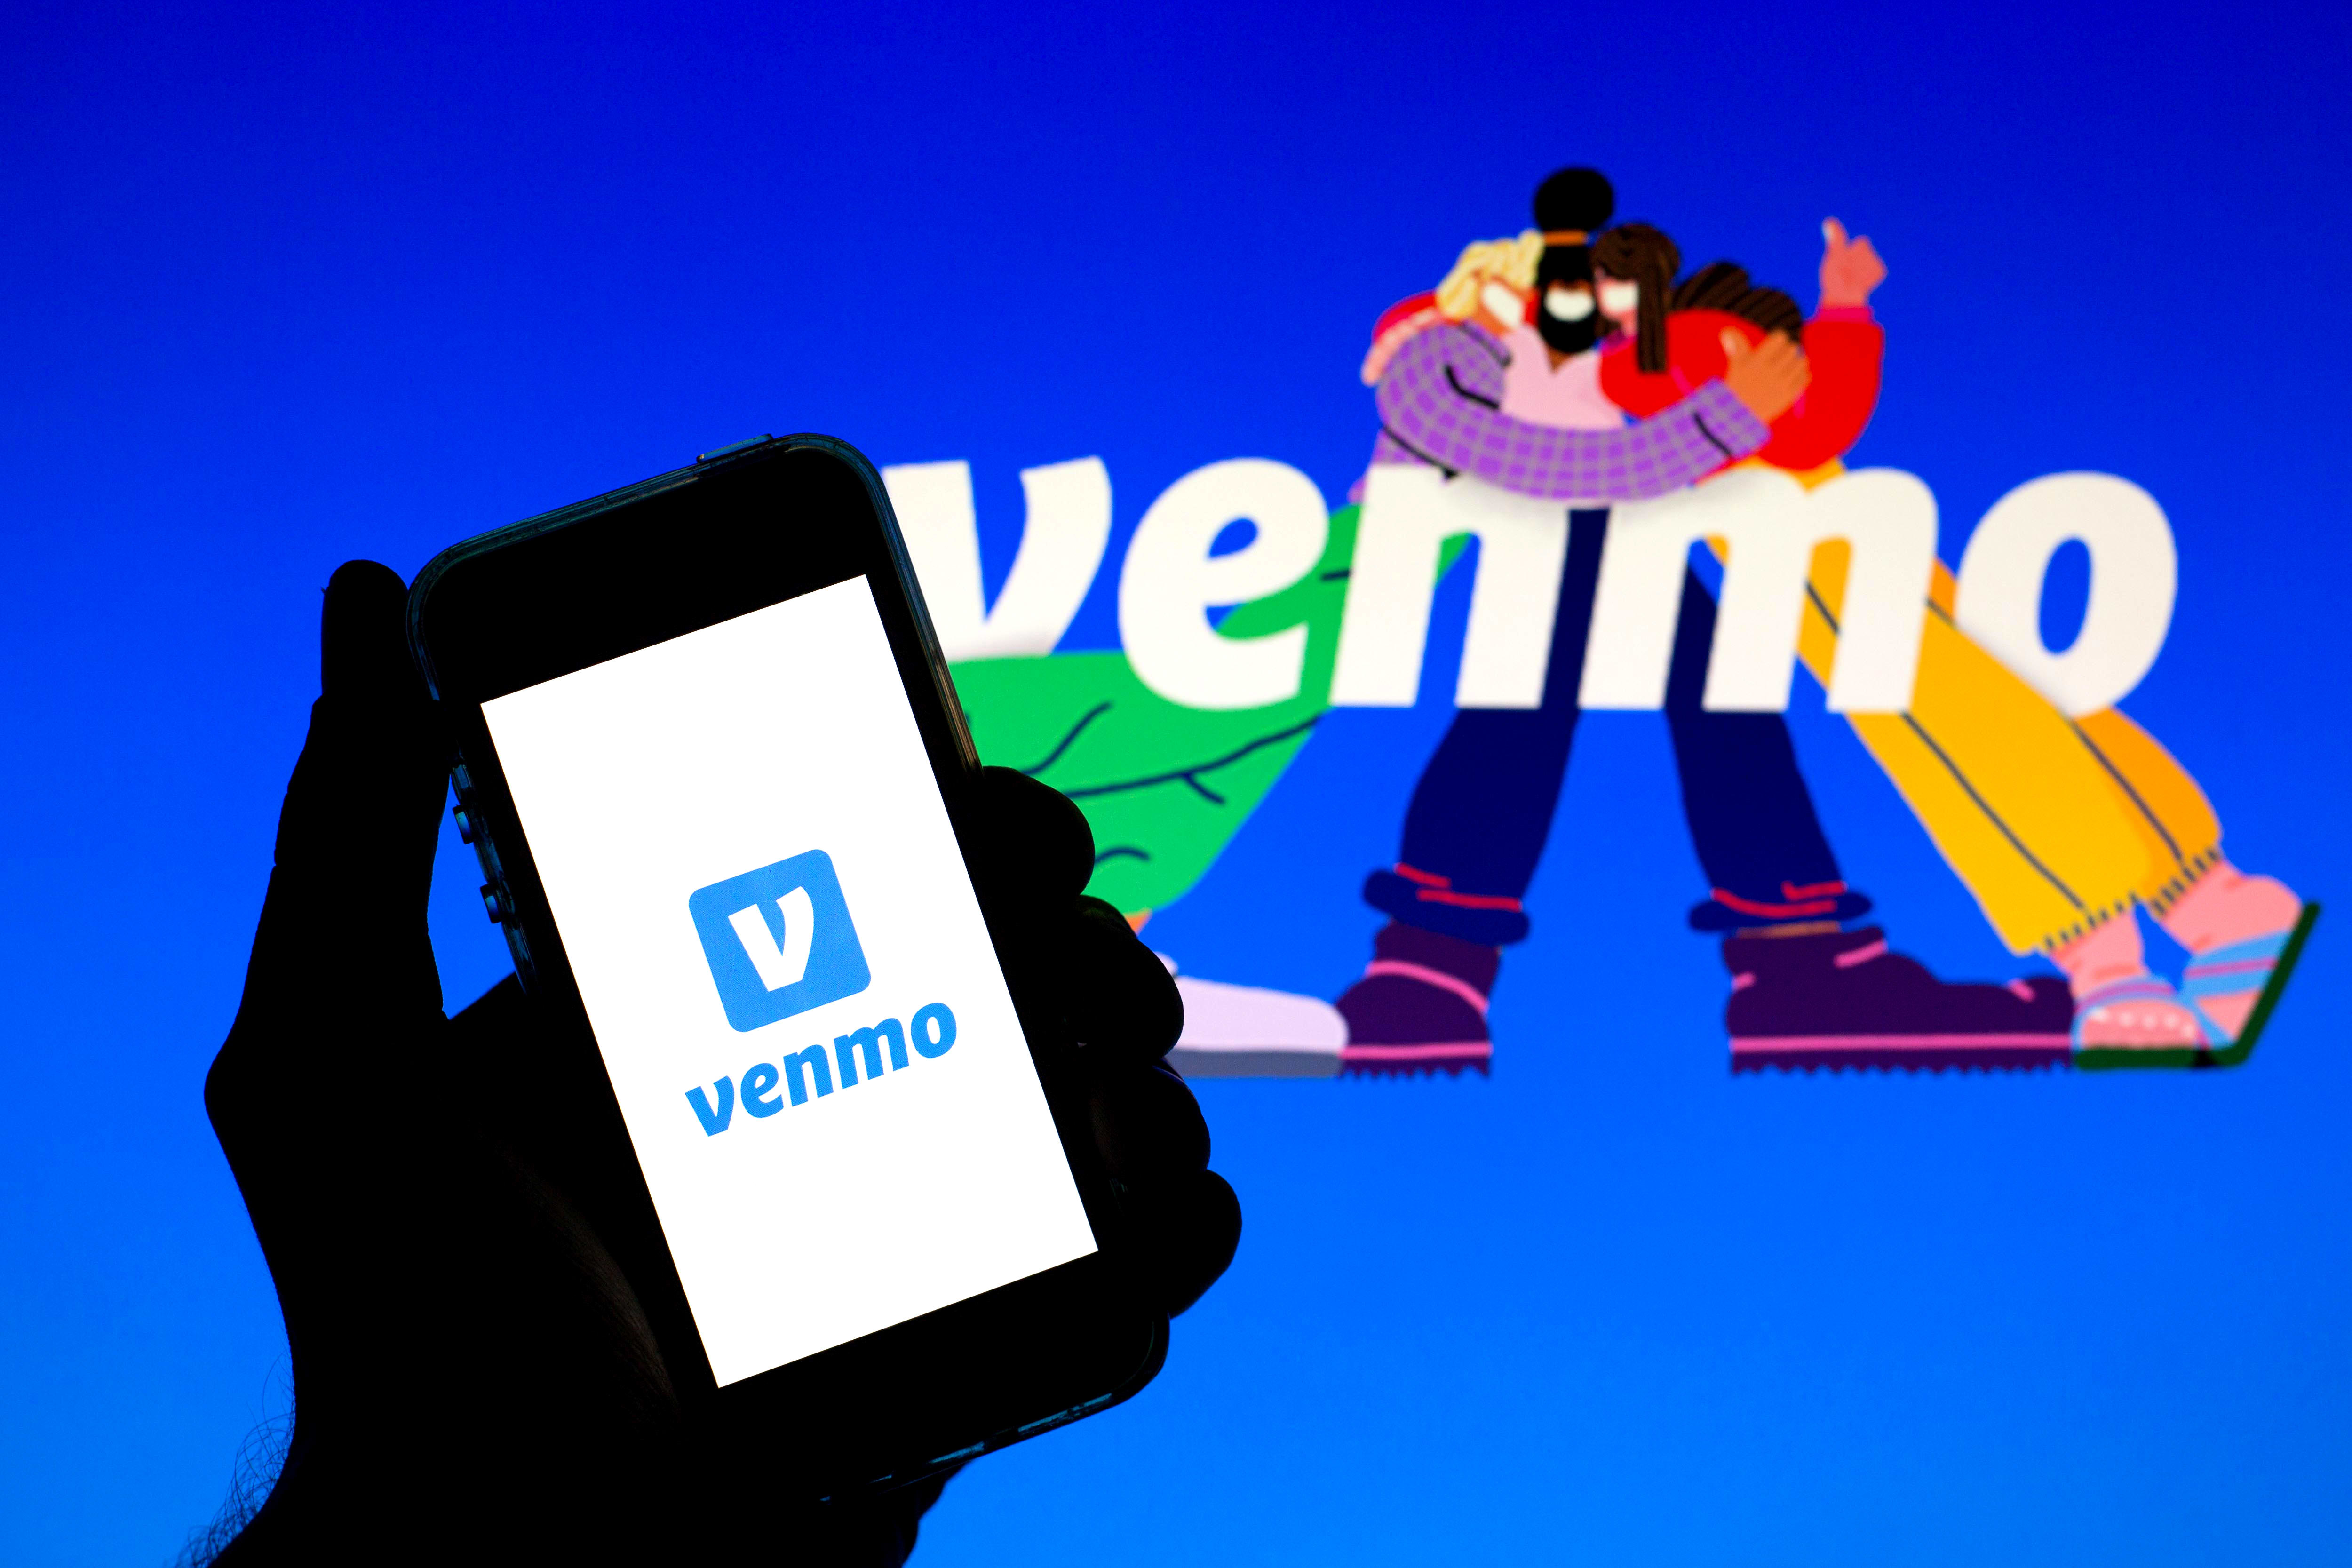 Venmo is letting its credit cardholders convert cash-back to crypto for free